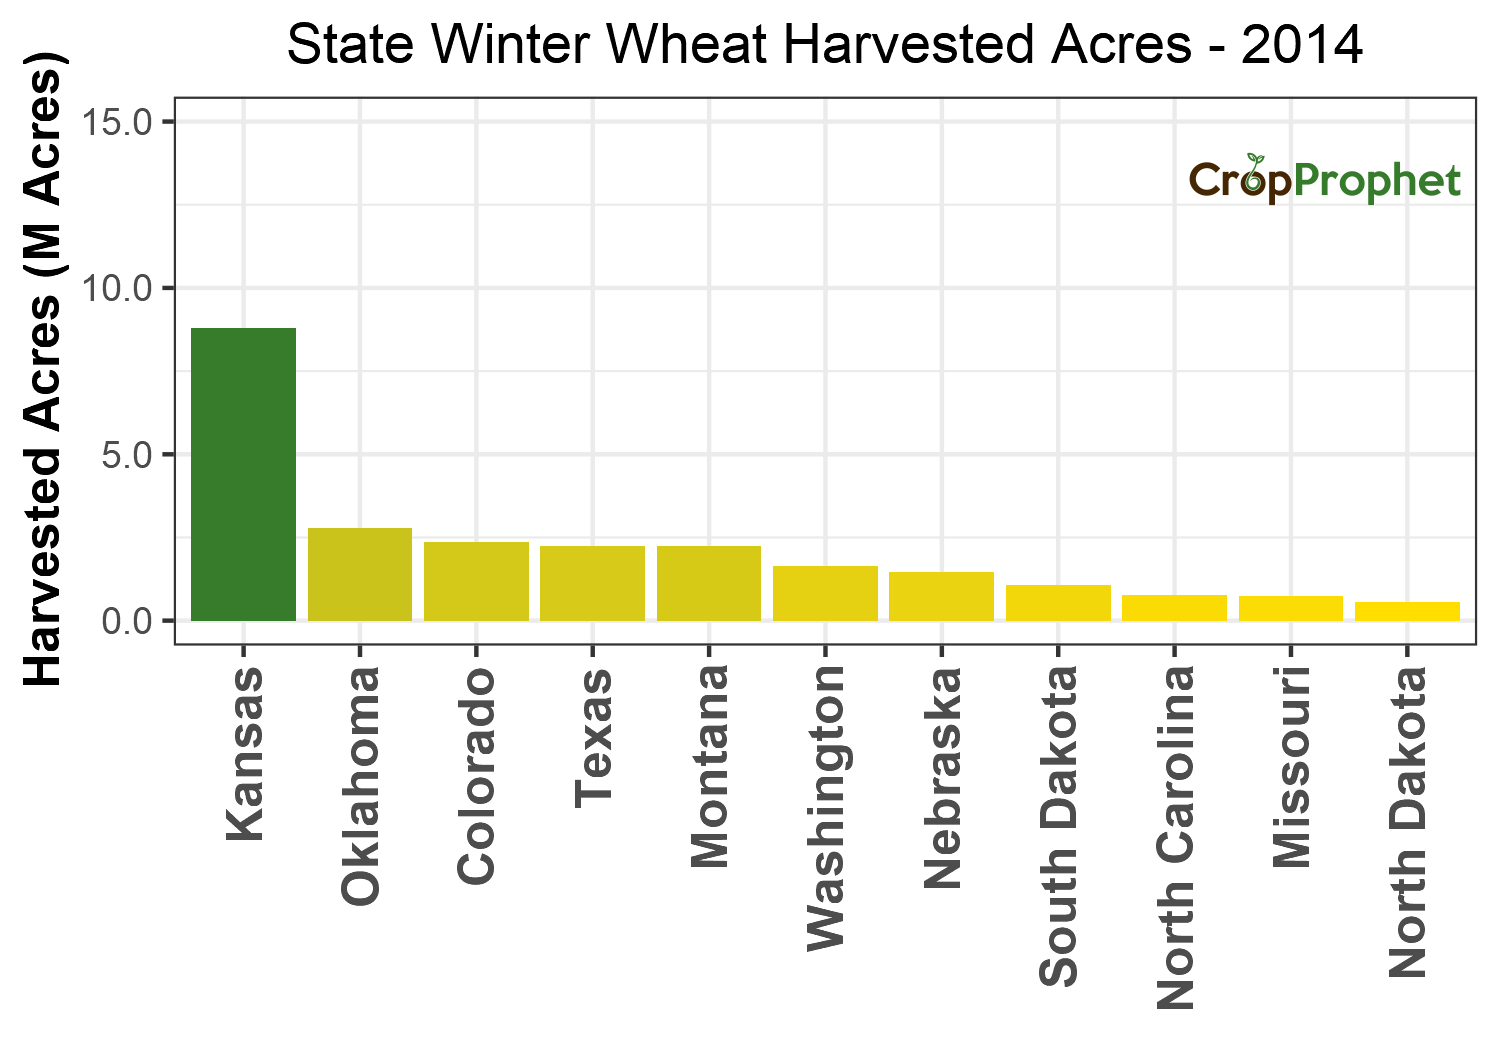 Winter wheat Harvested Acres by State - 2014 Rankings